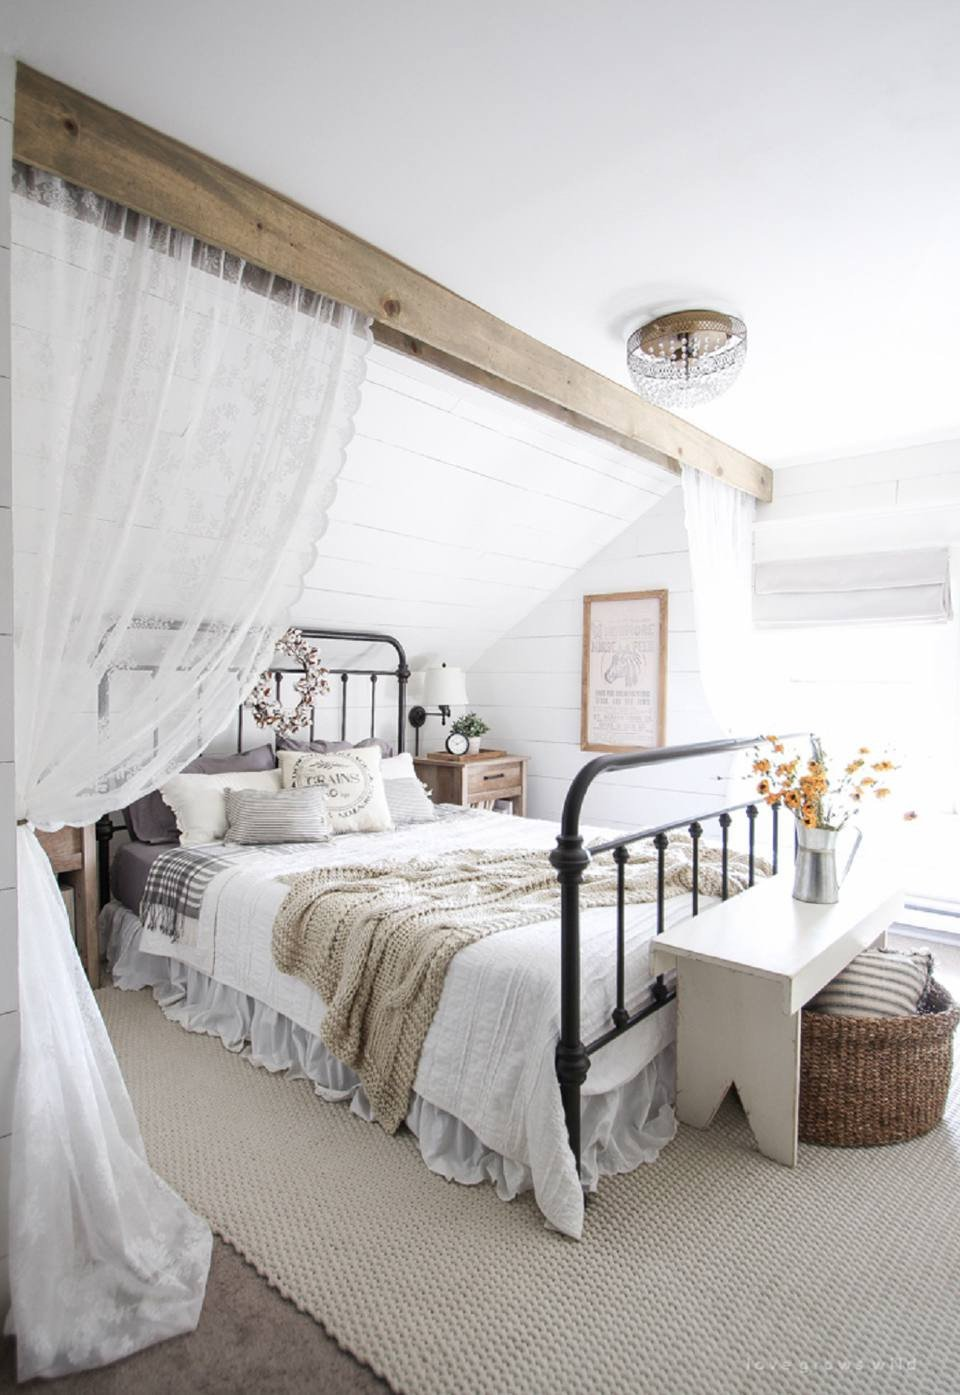 Farmhouse Style Bedroom Set Inspirational 50 Decorating Ideas for Farmhouse Style Bedrooms